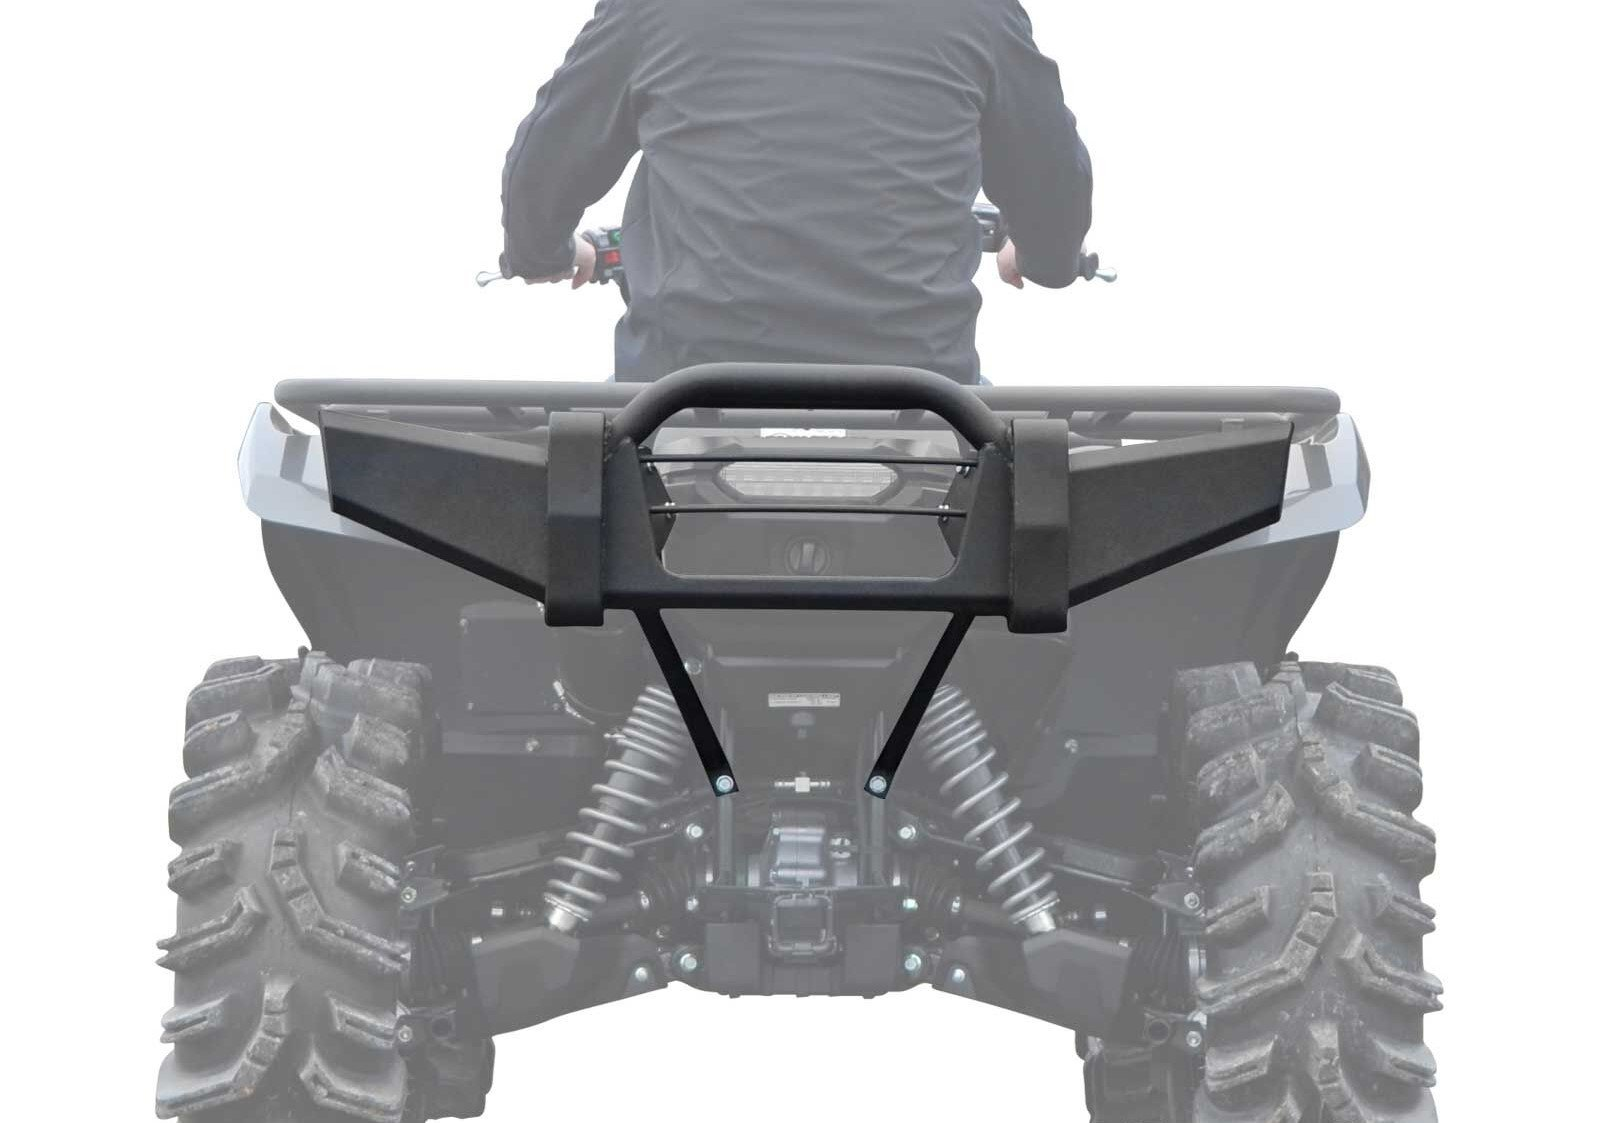 SuperATV Yamaha Grizzly 550 / 700 Heavy Duty Rear Bumper - Fits Years Up To 2015